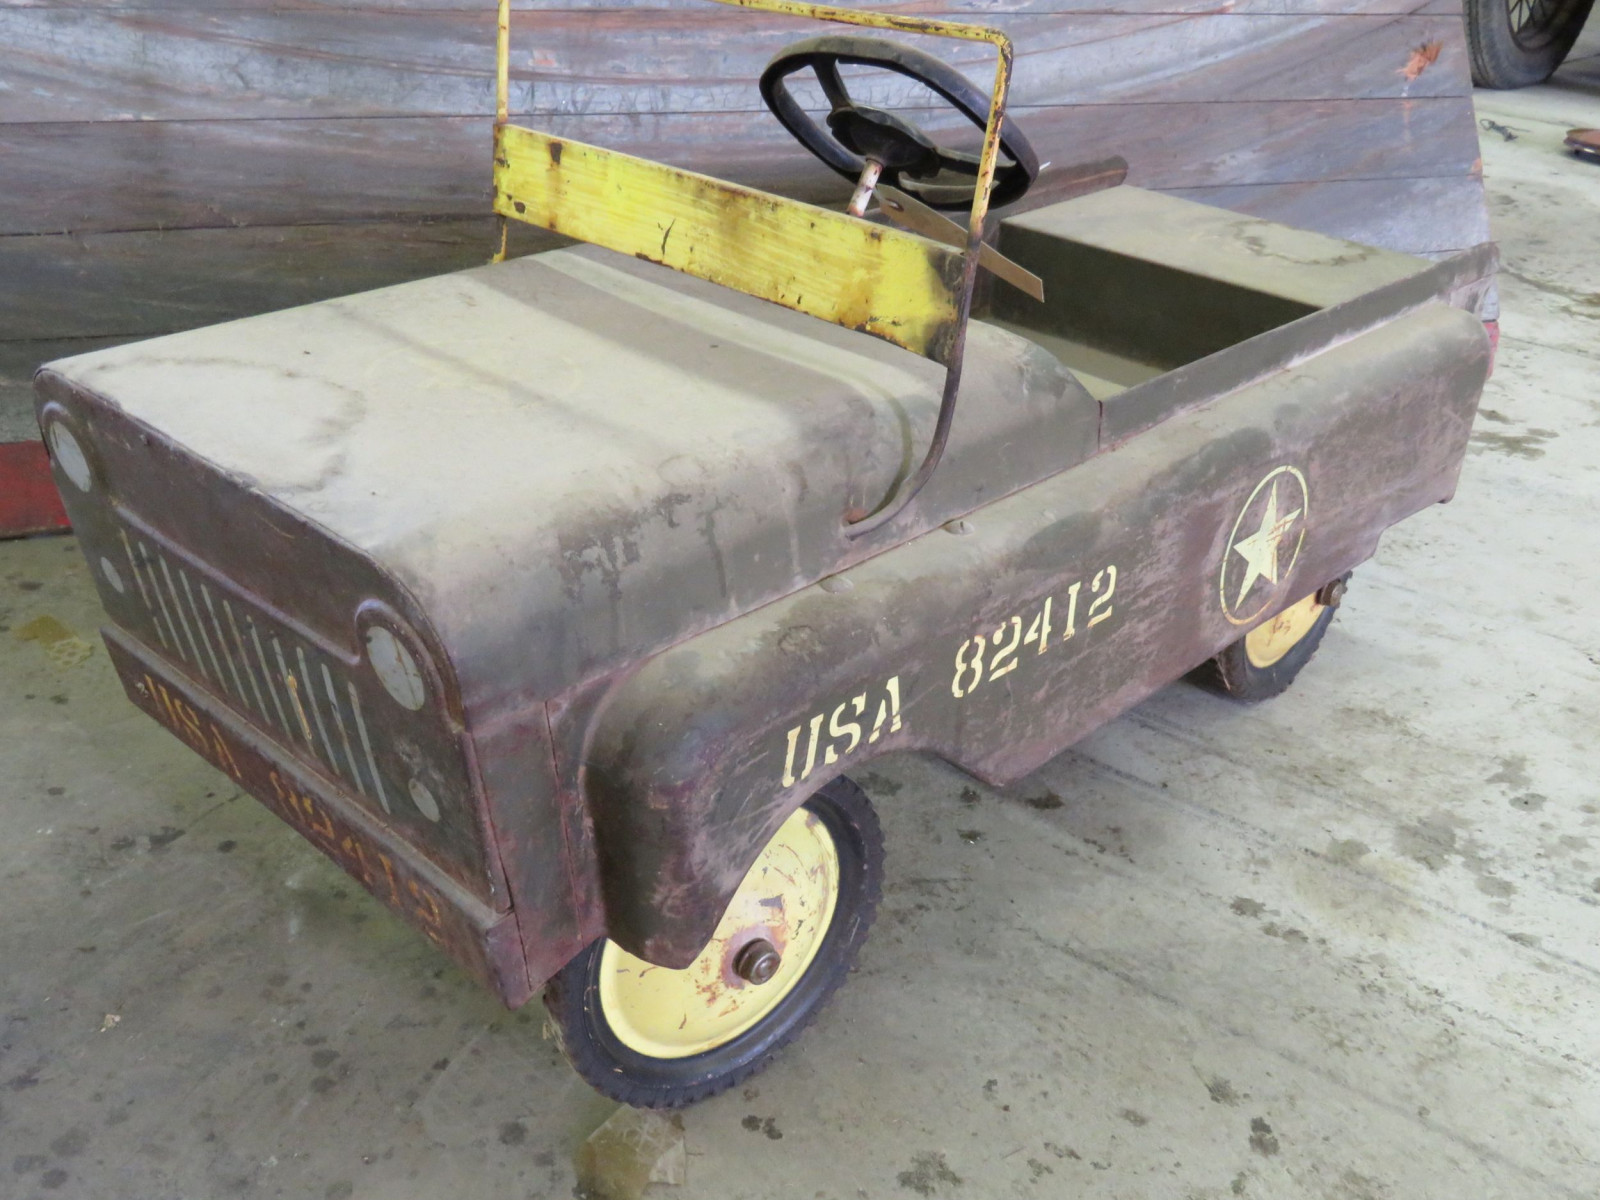 Vintage Garton Military Jeep Pedal Car for restore - Image 1